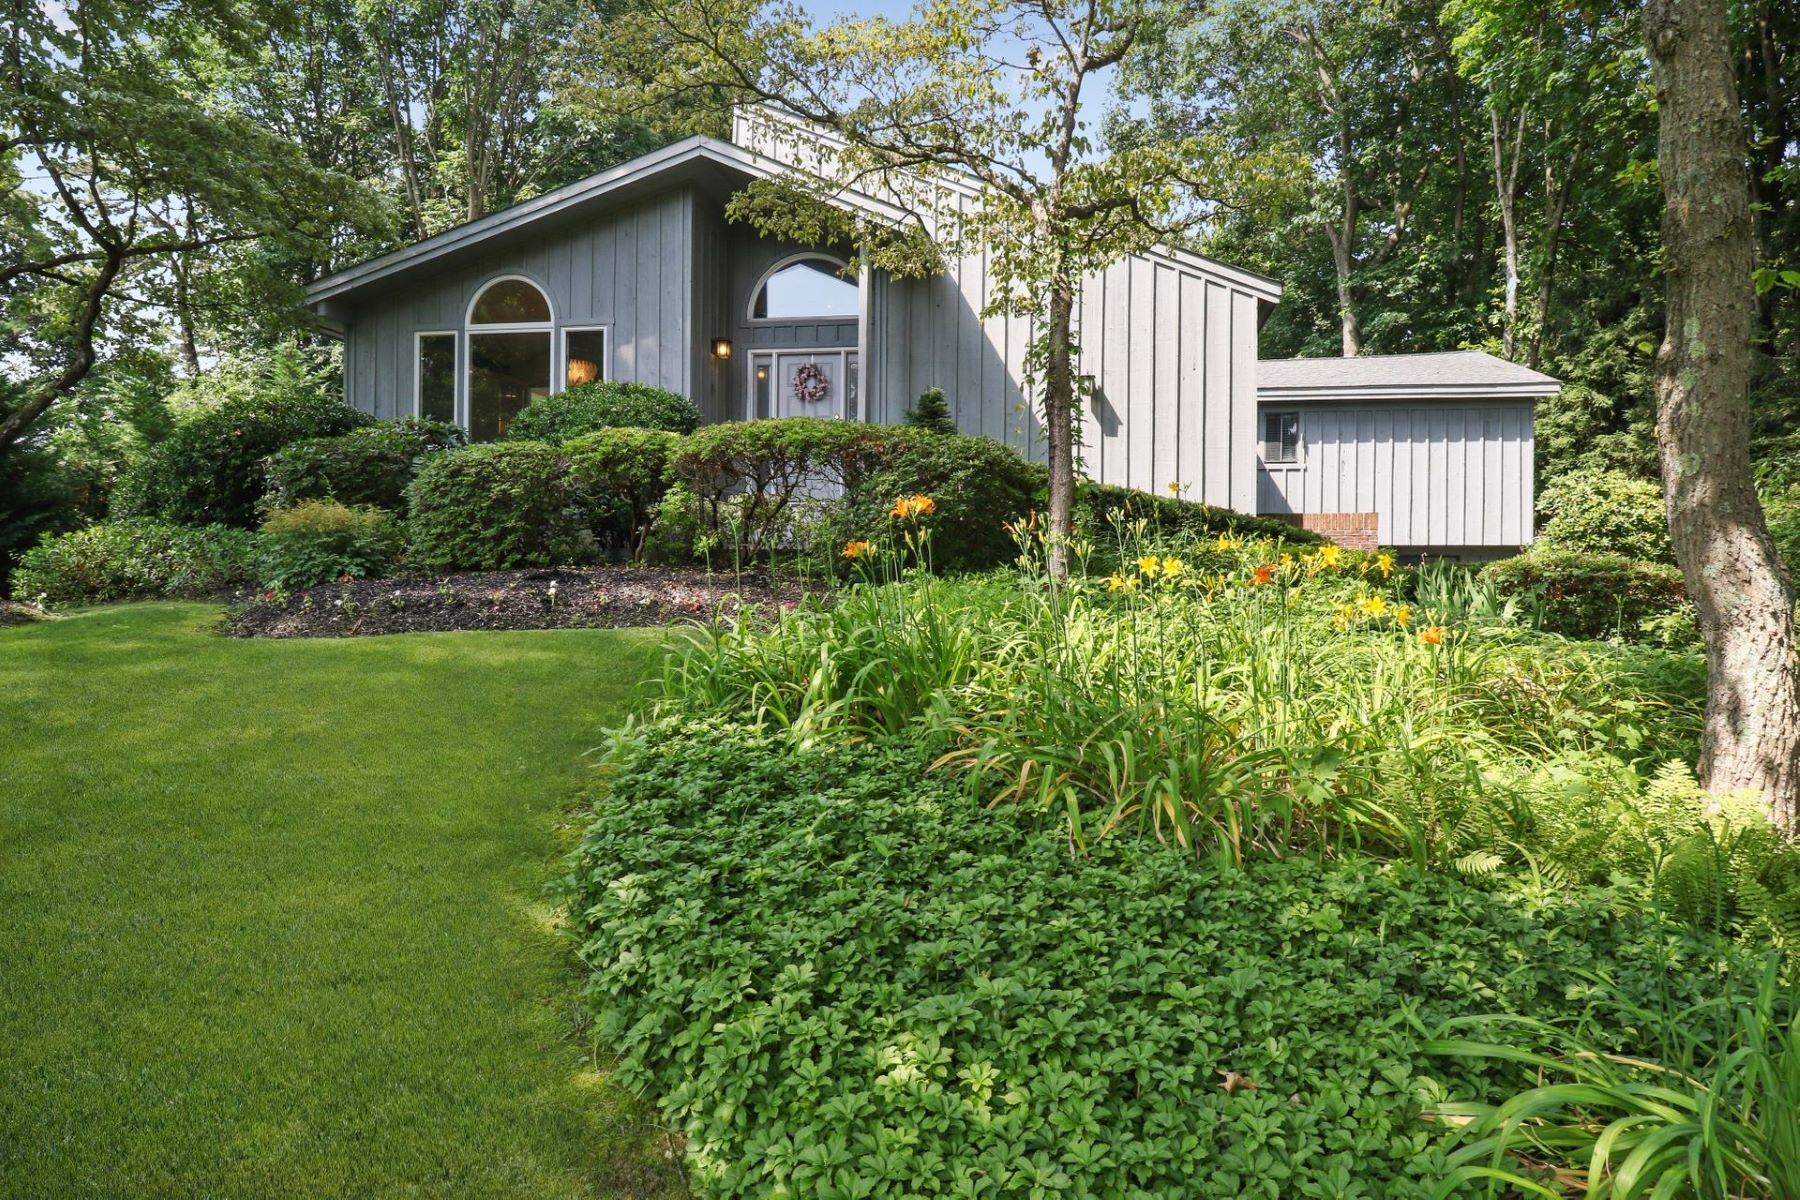 Single Family Homes for Sale at Kings Park 6 Ernest Ct Kings Park, New York 11754 United States